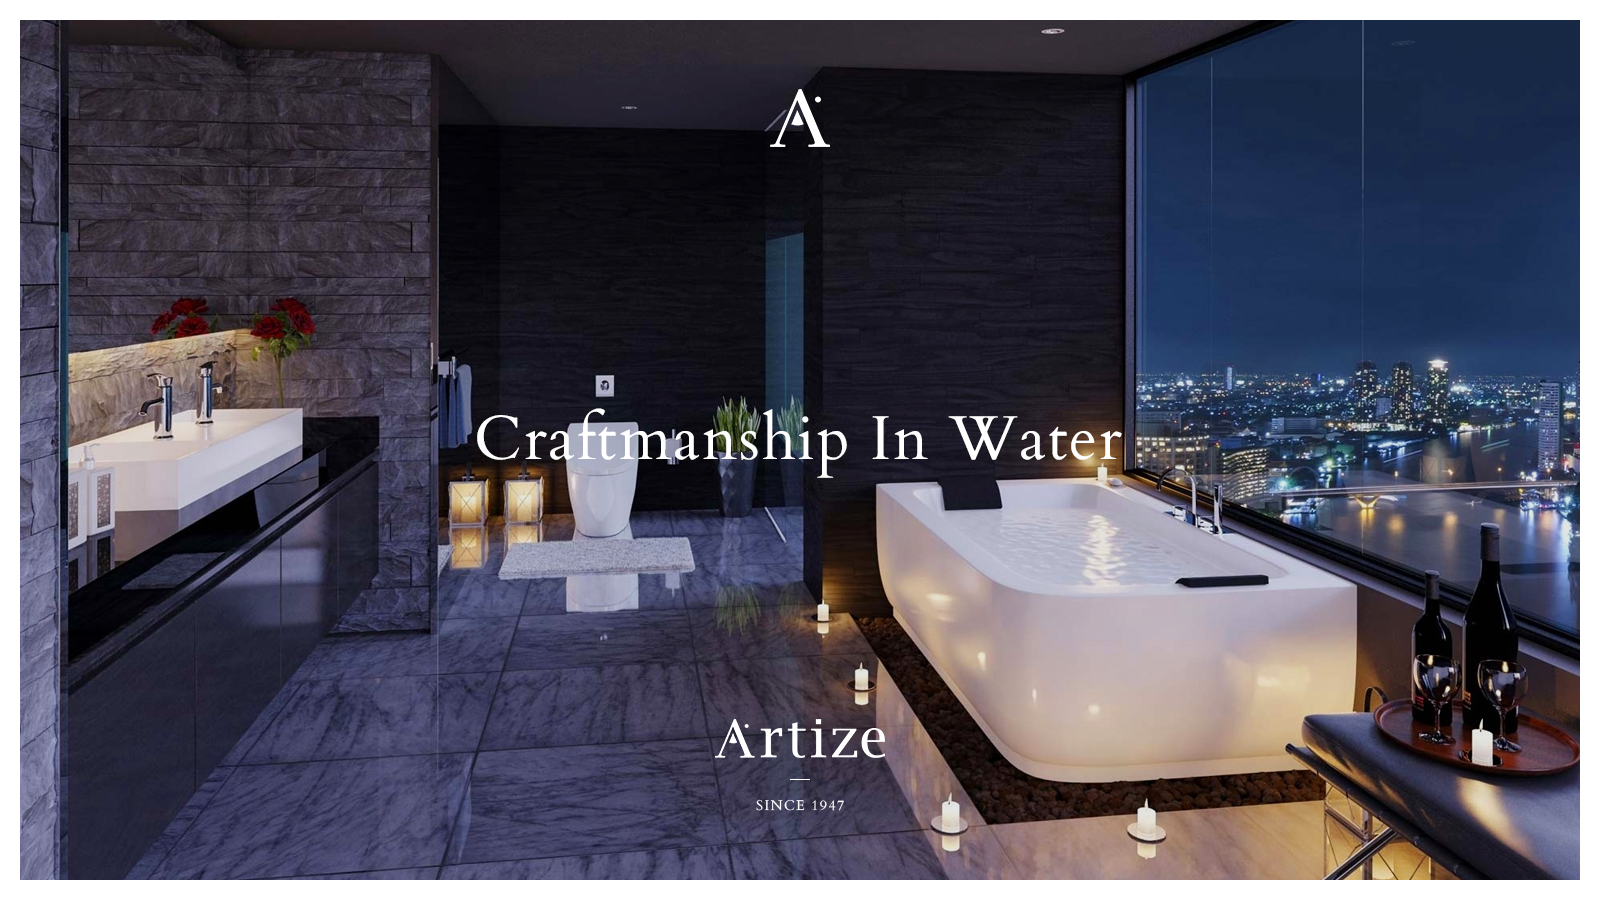 Jaquar Artize is a leading manufacturer of luxury ...